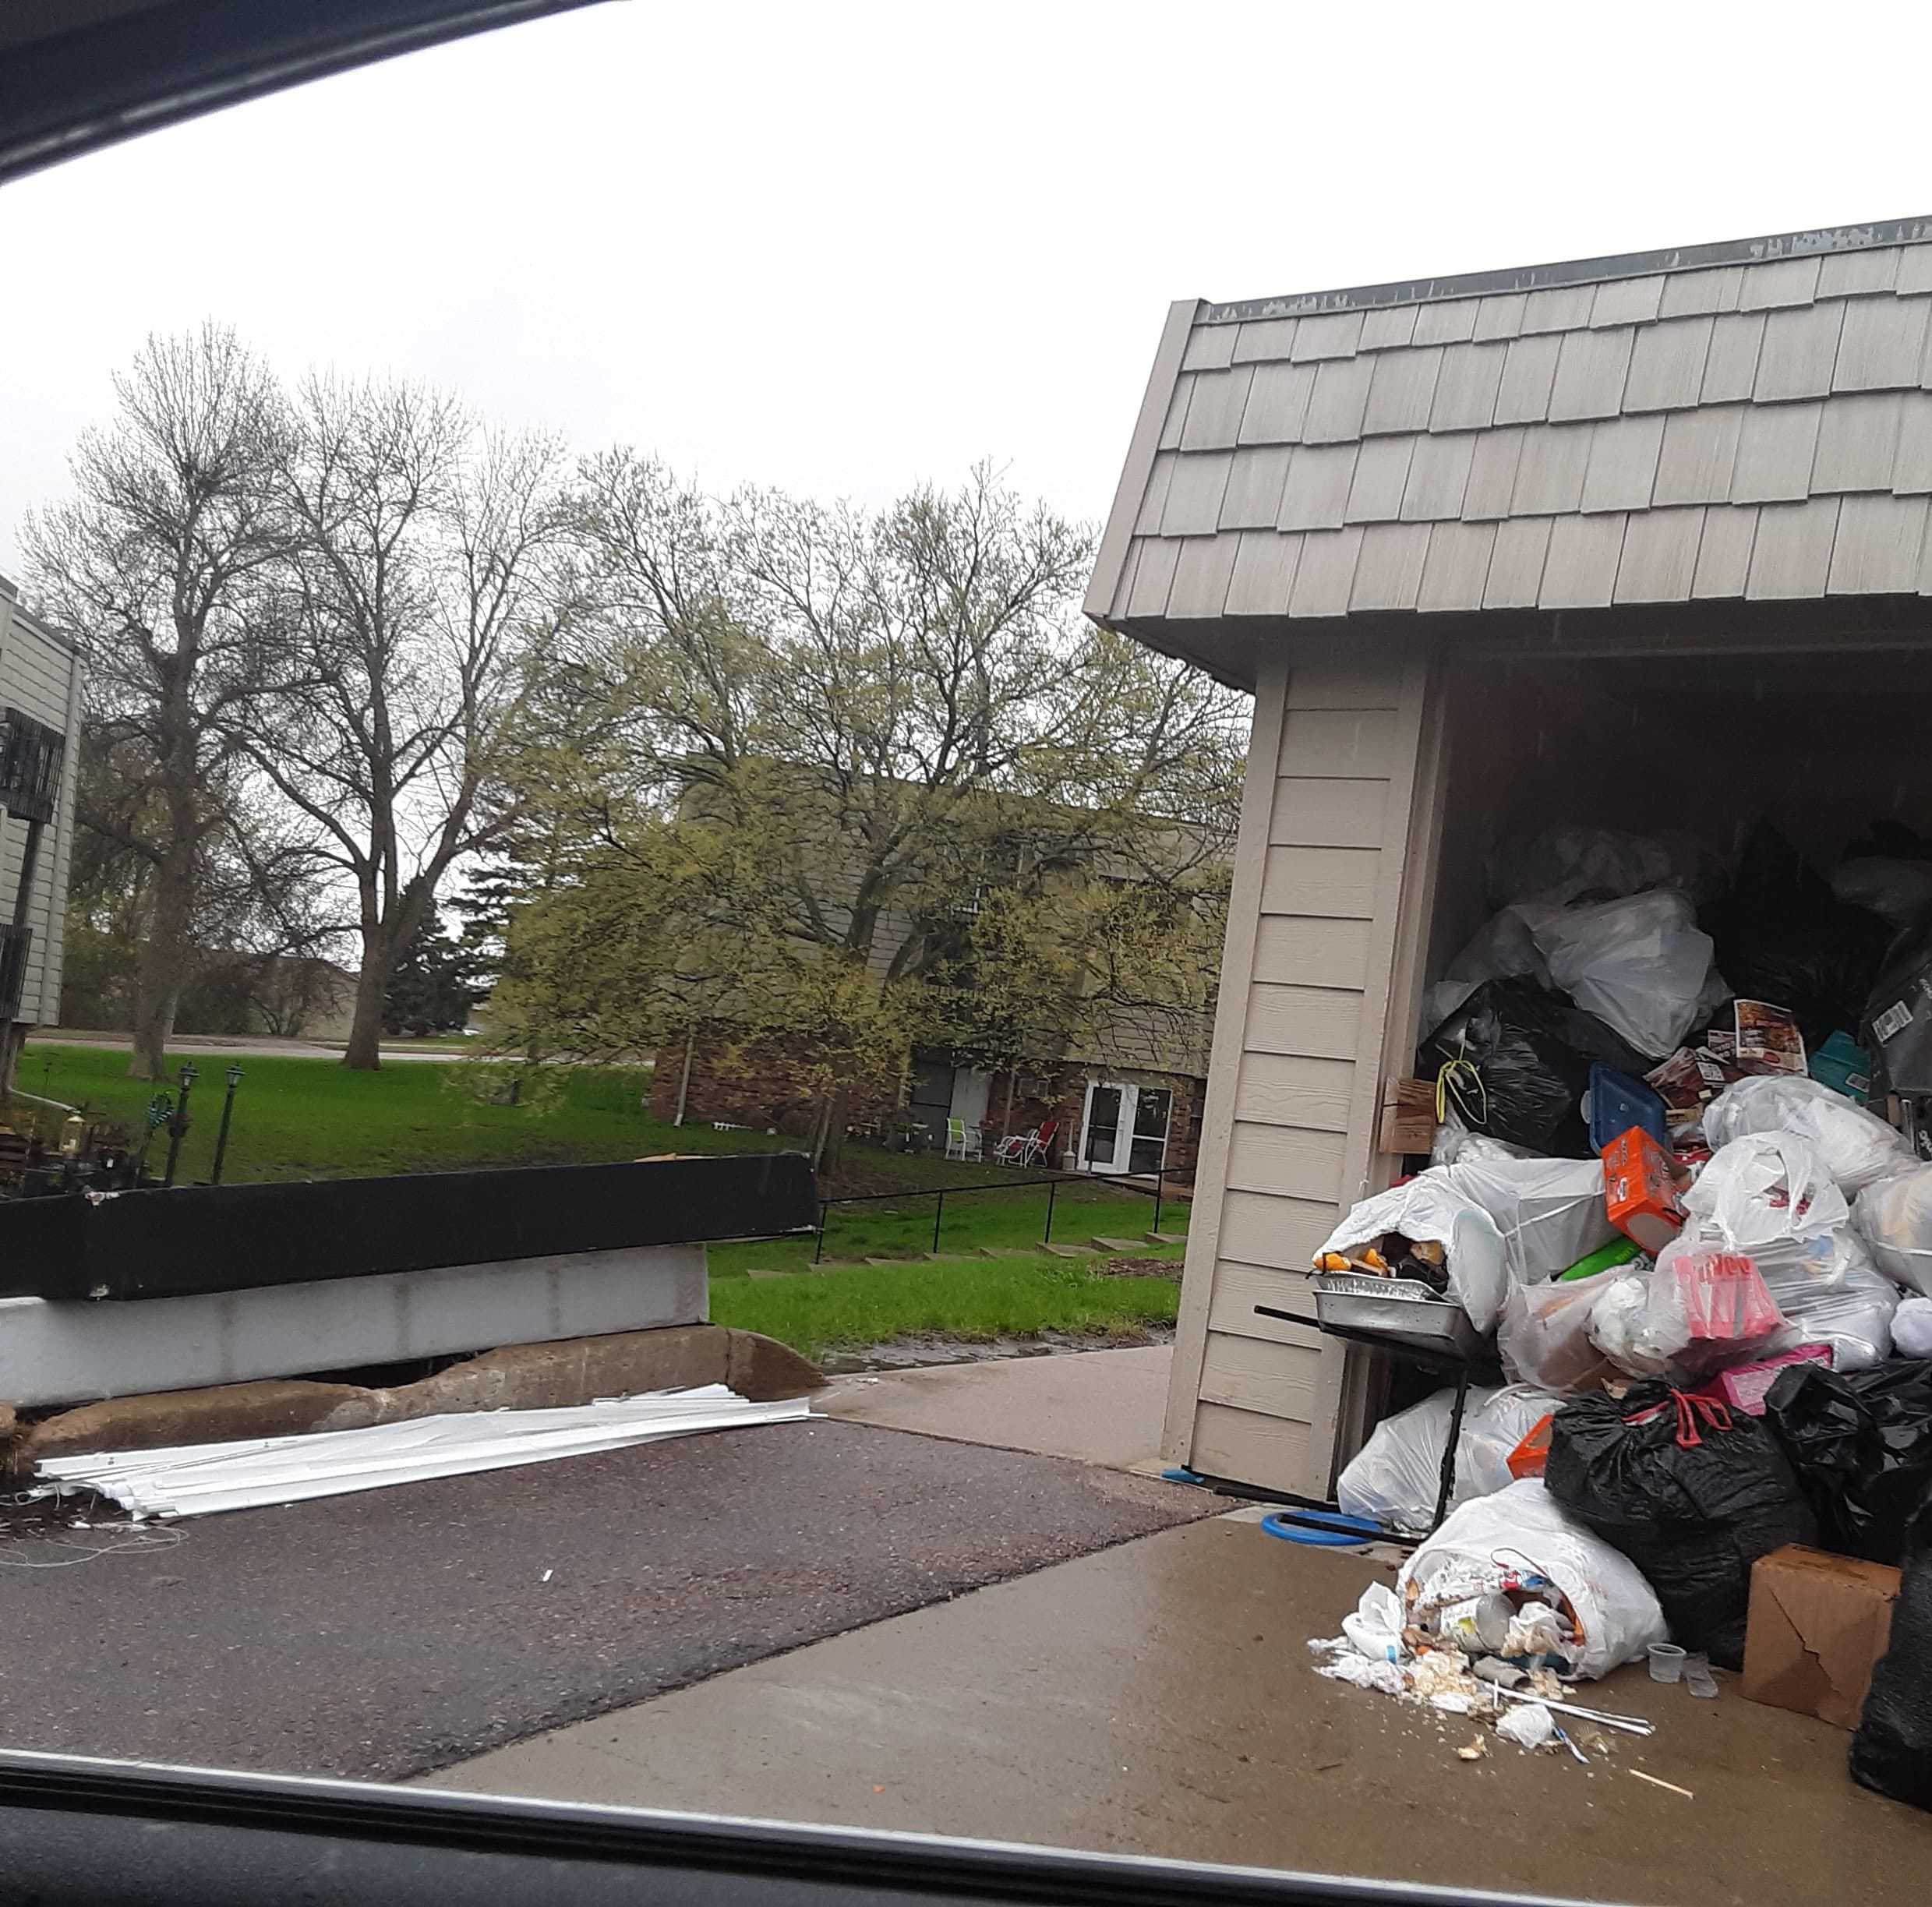 New owner of Sioux Falls apartment complexes hit with garbage, service complaints